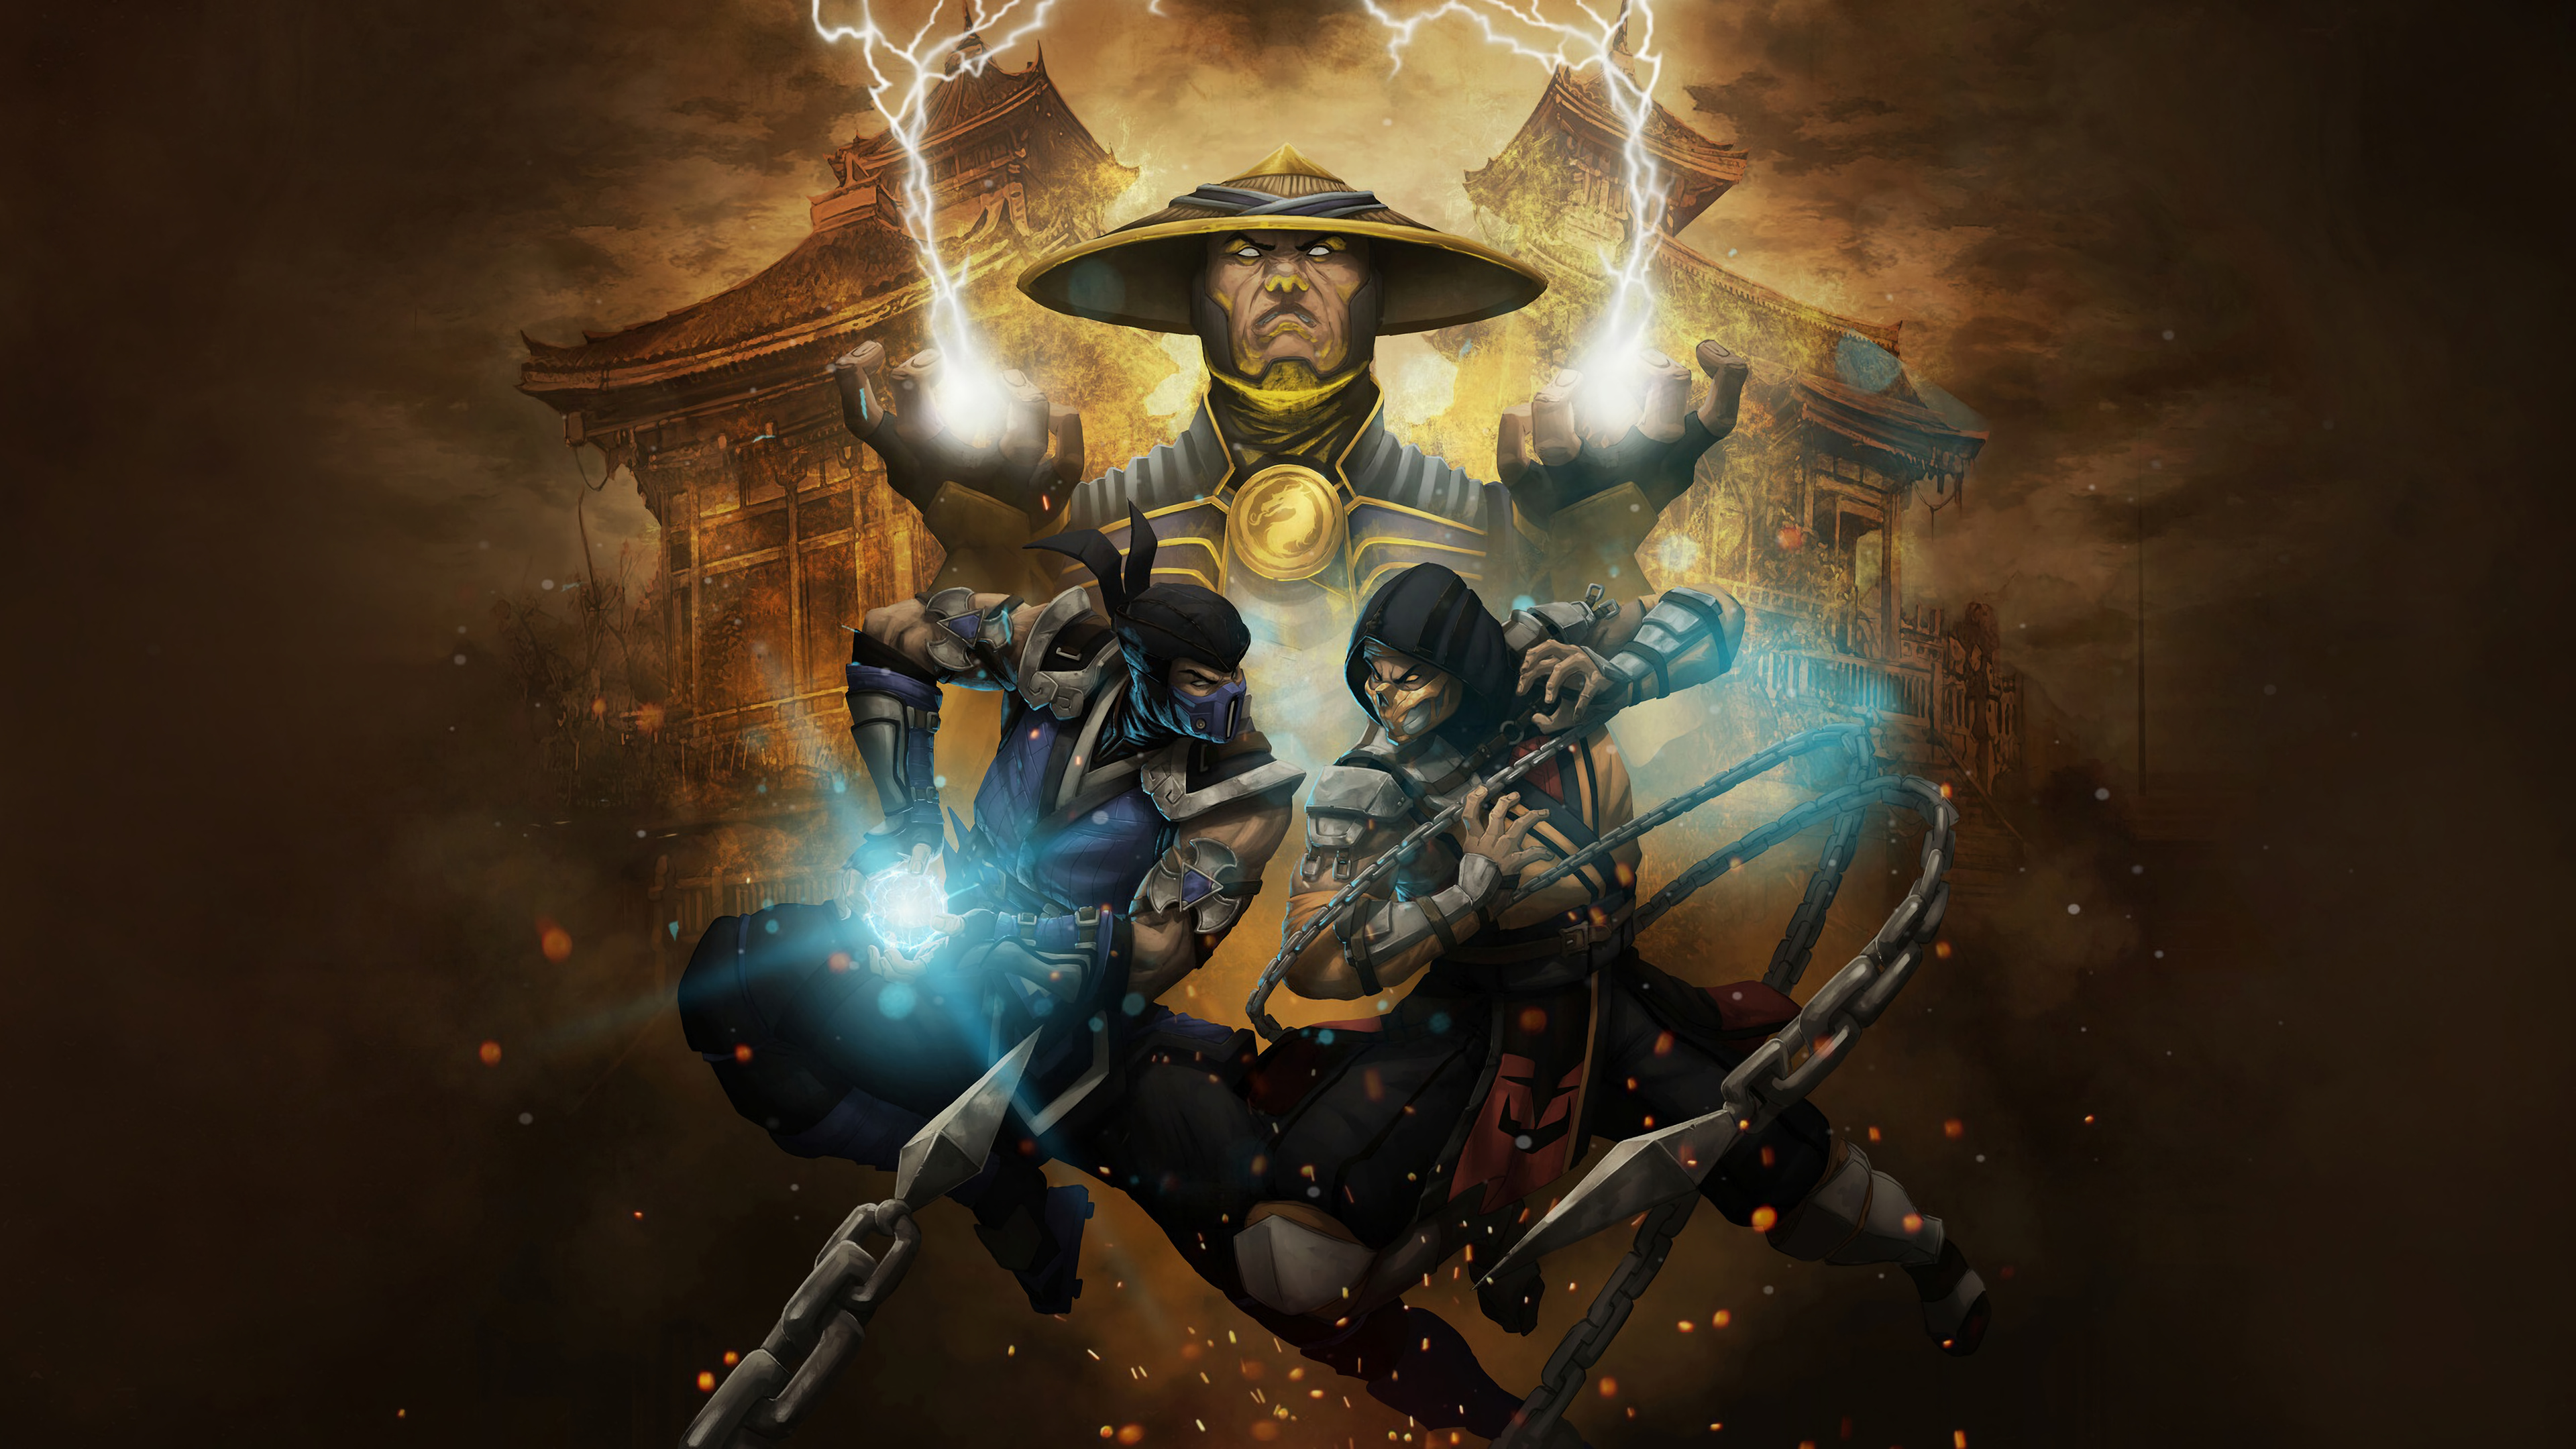 Mortal Kombat Raiden Subzero Y Scorpion Wallpaper 4k Ultra